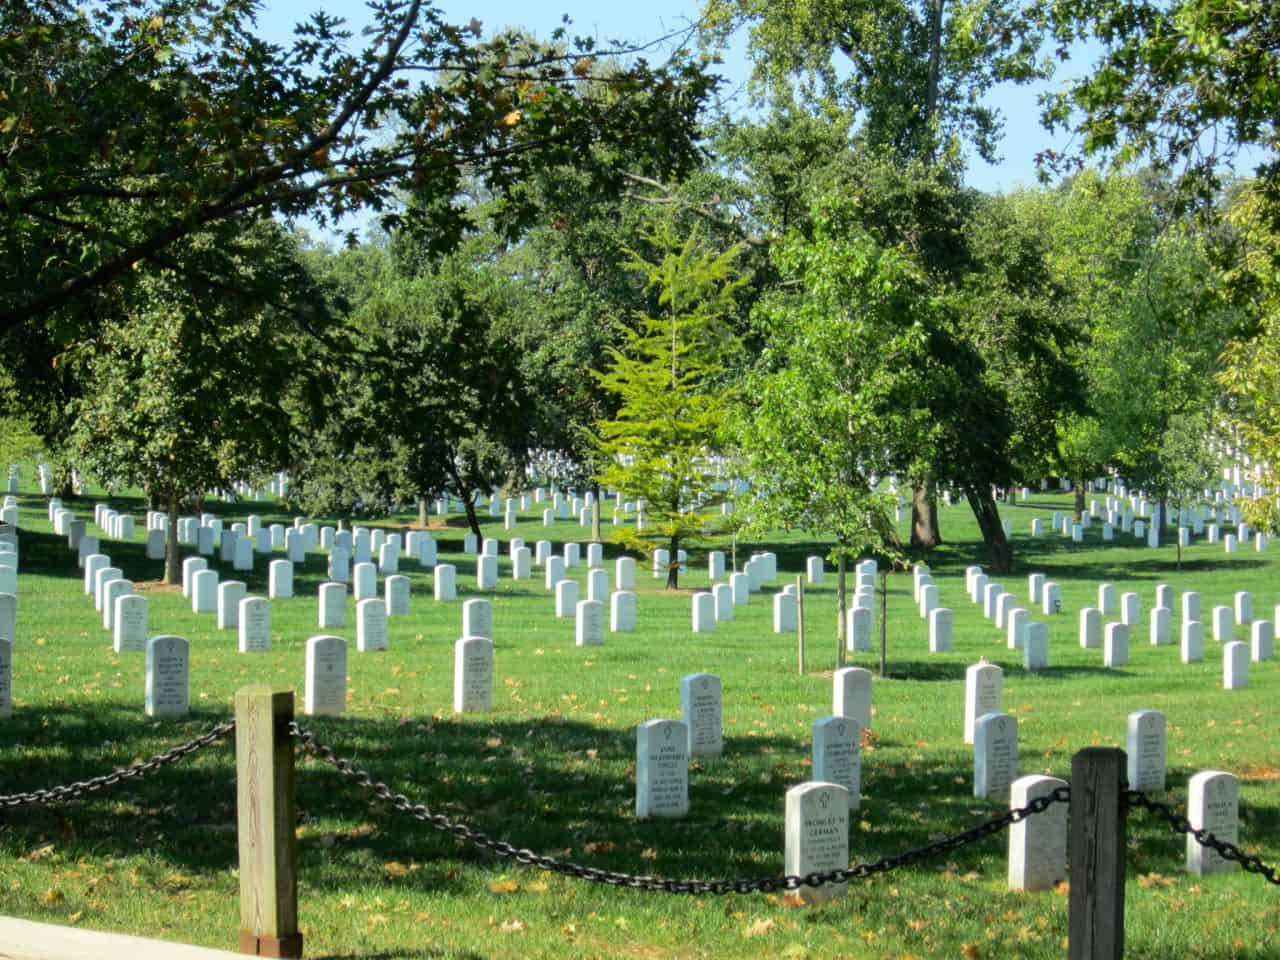 Arlington National Cemetery - Washington D.C., USA